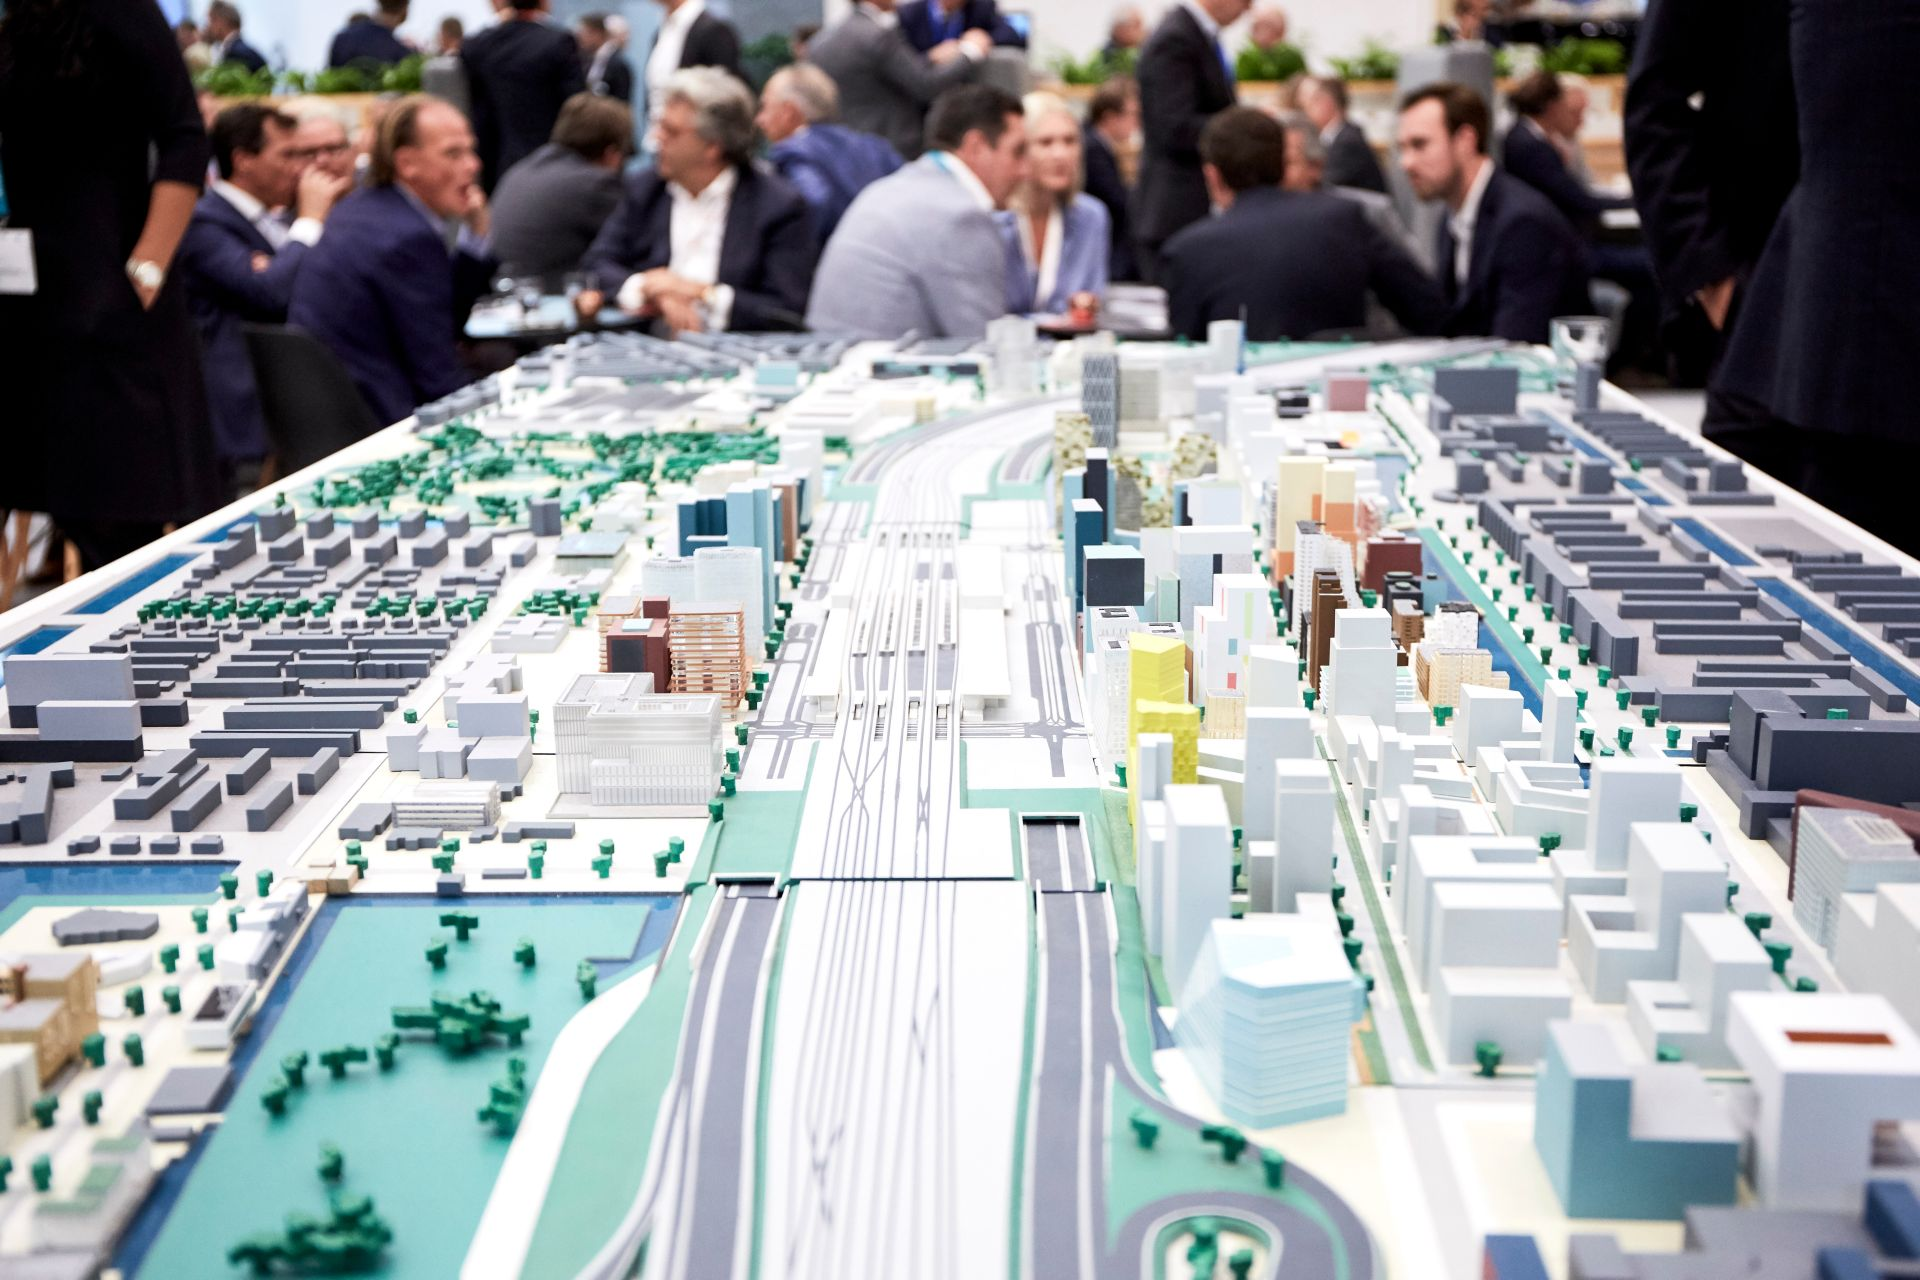 EXPO REAL model of the city